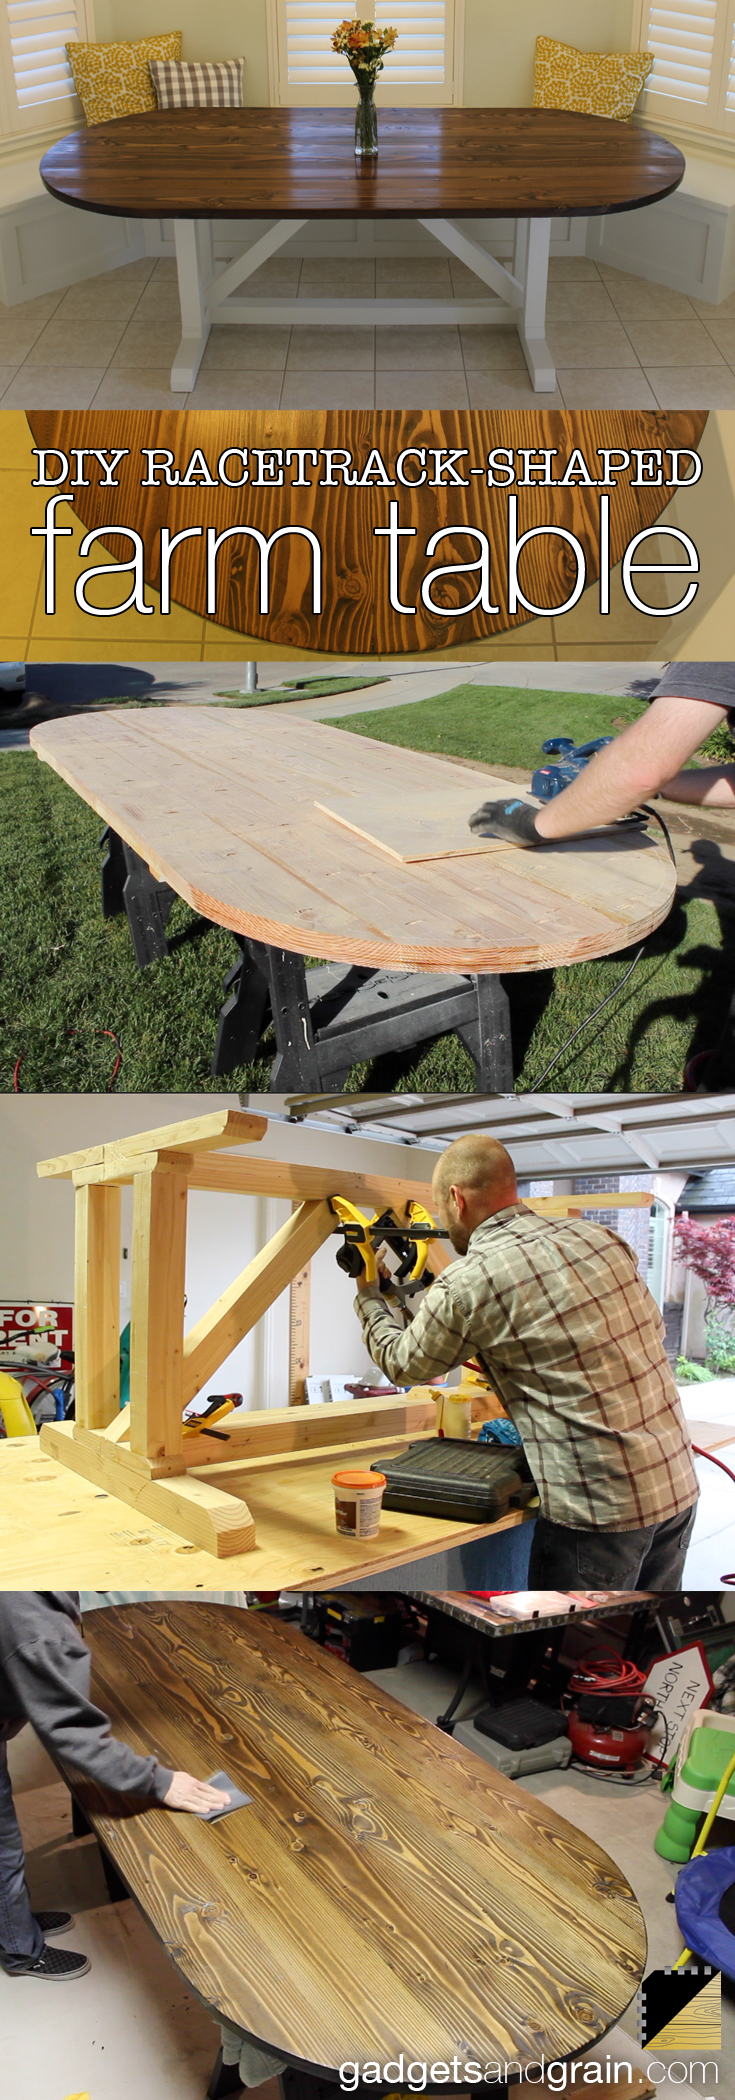 storyboard of steps to build a racetrack-shaped dining table